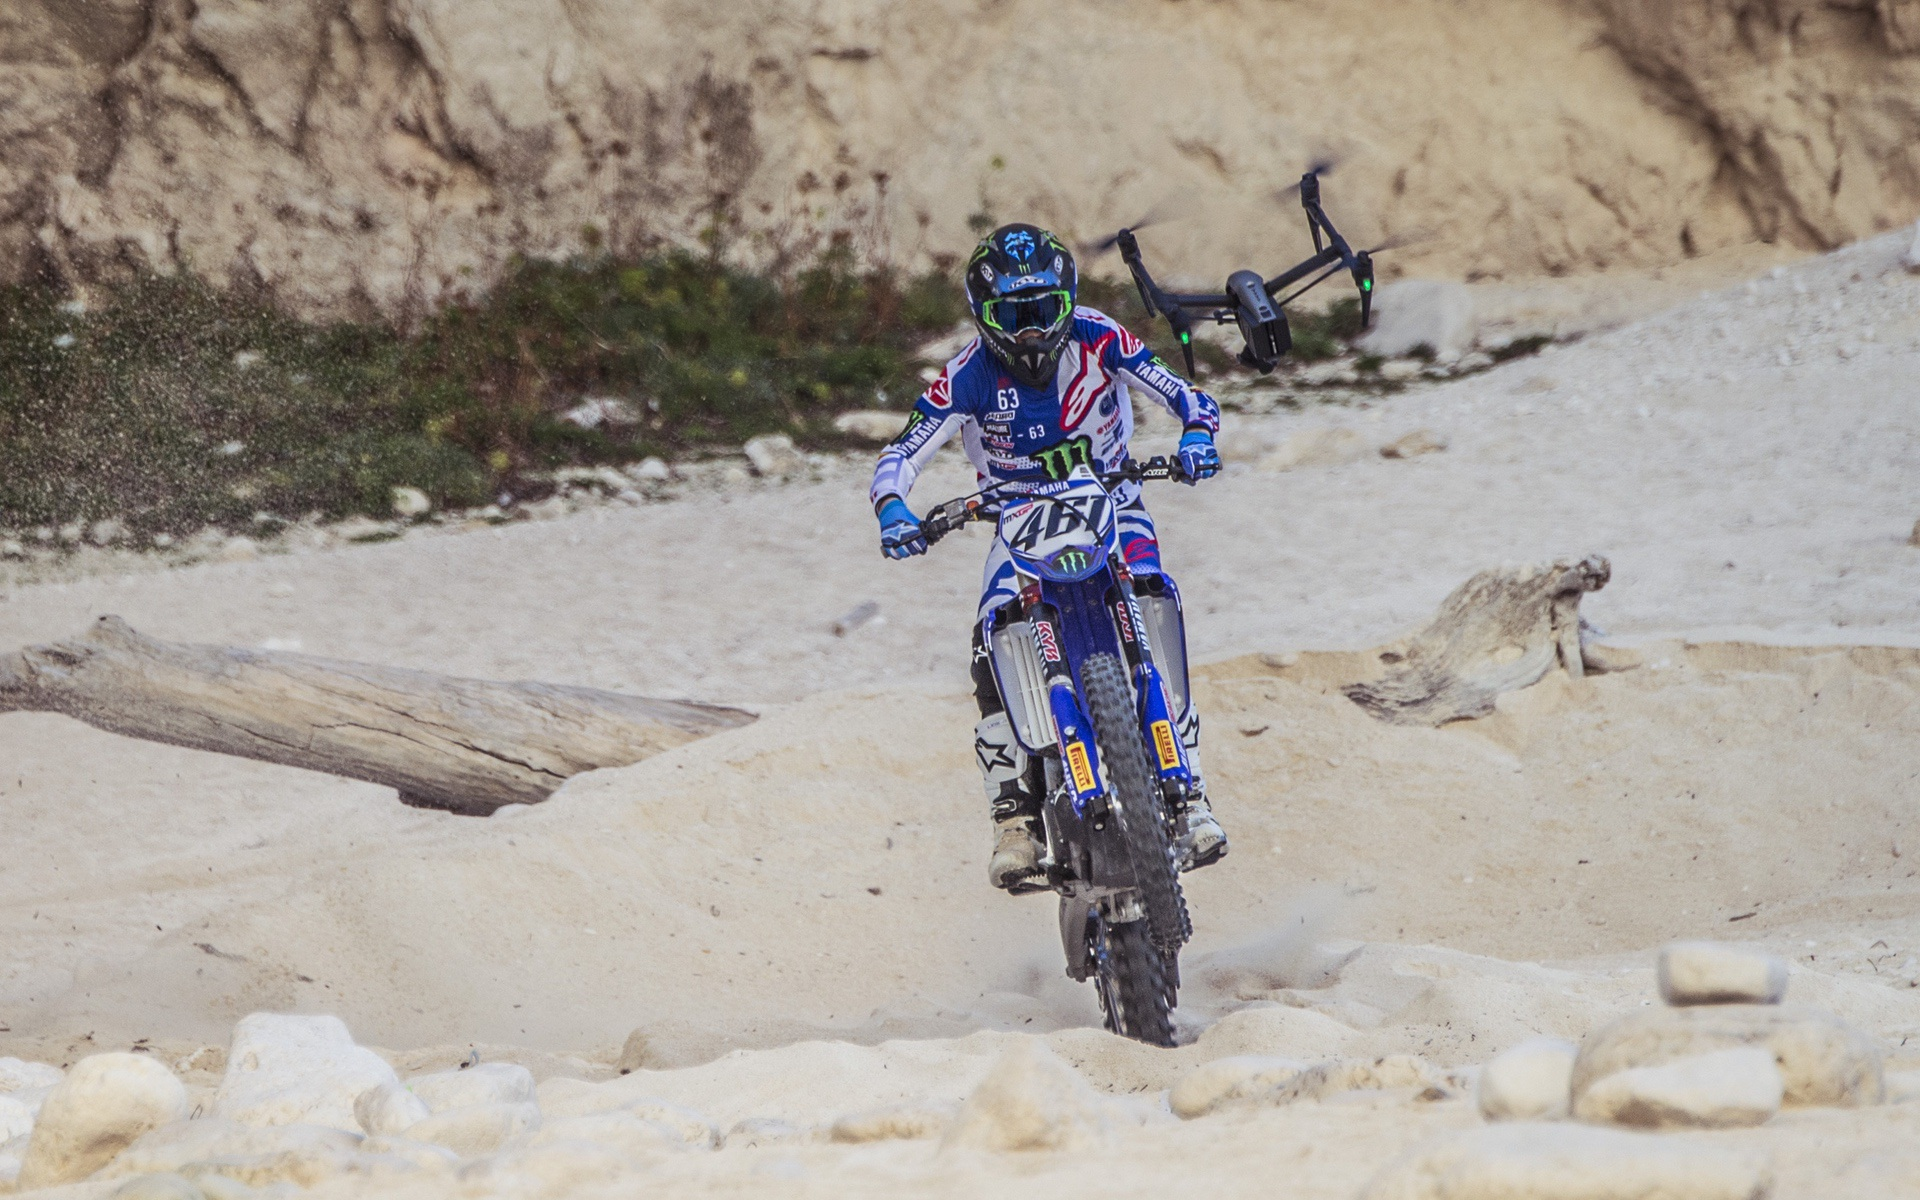 Romain_Febvre_Monster_Energy_Shipwreck_0034